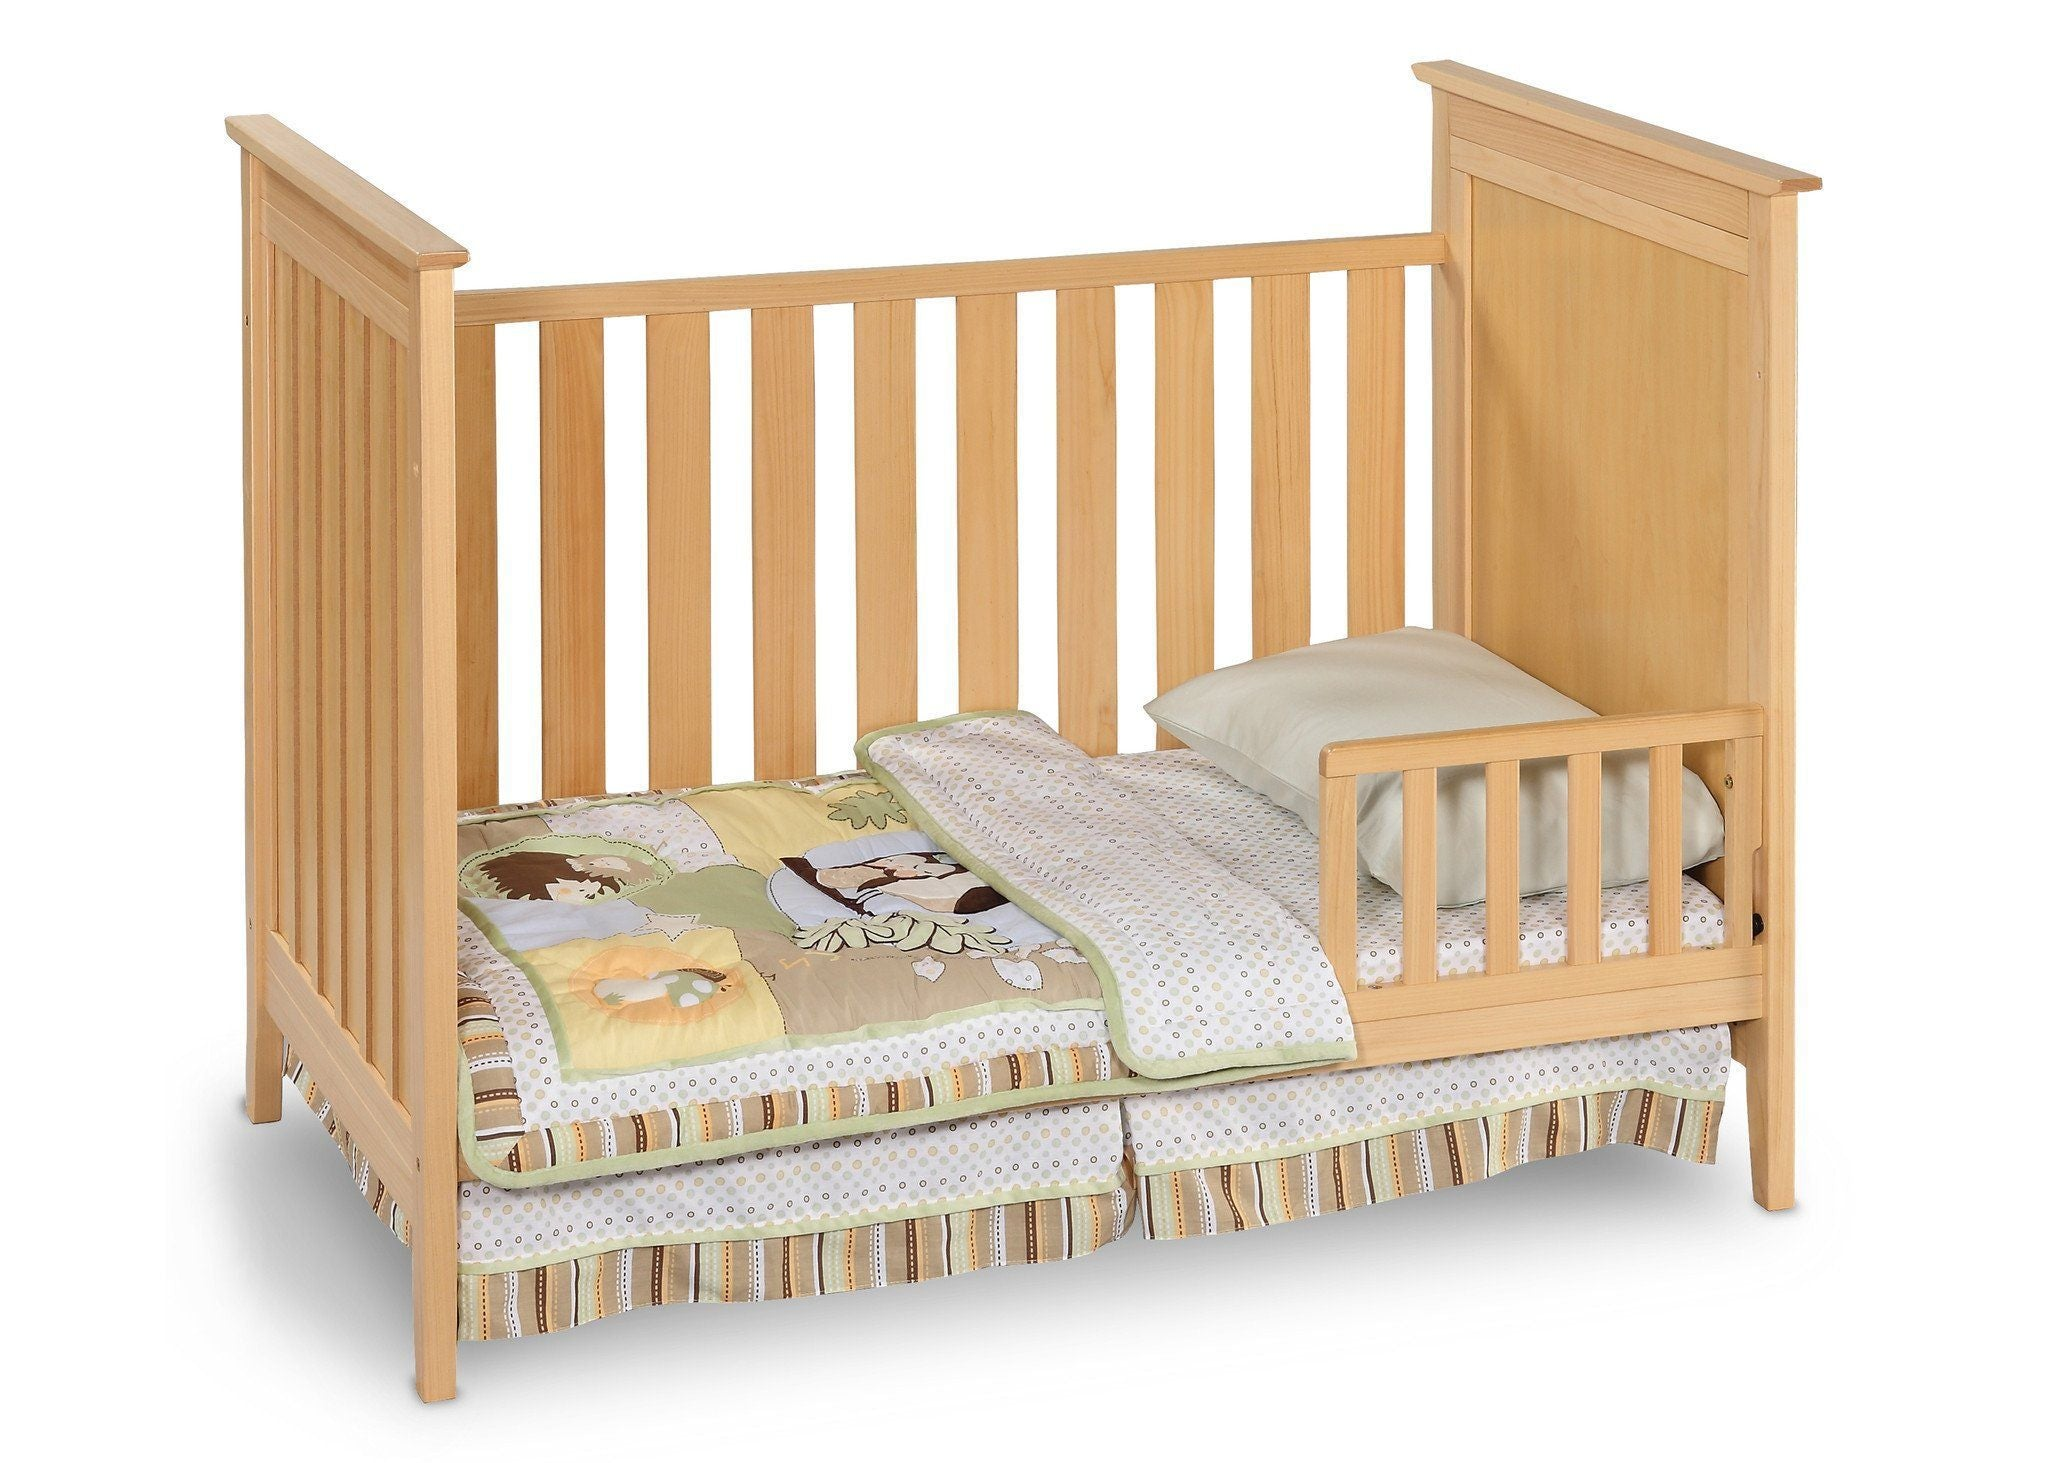 Simmons Kids Natural (260) Melody 3-in-1 Crib, Toddler Bed Conversion c2c